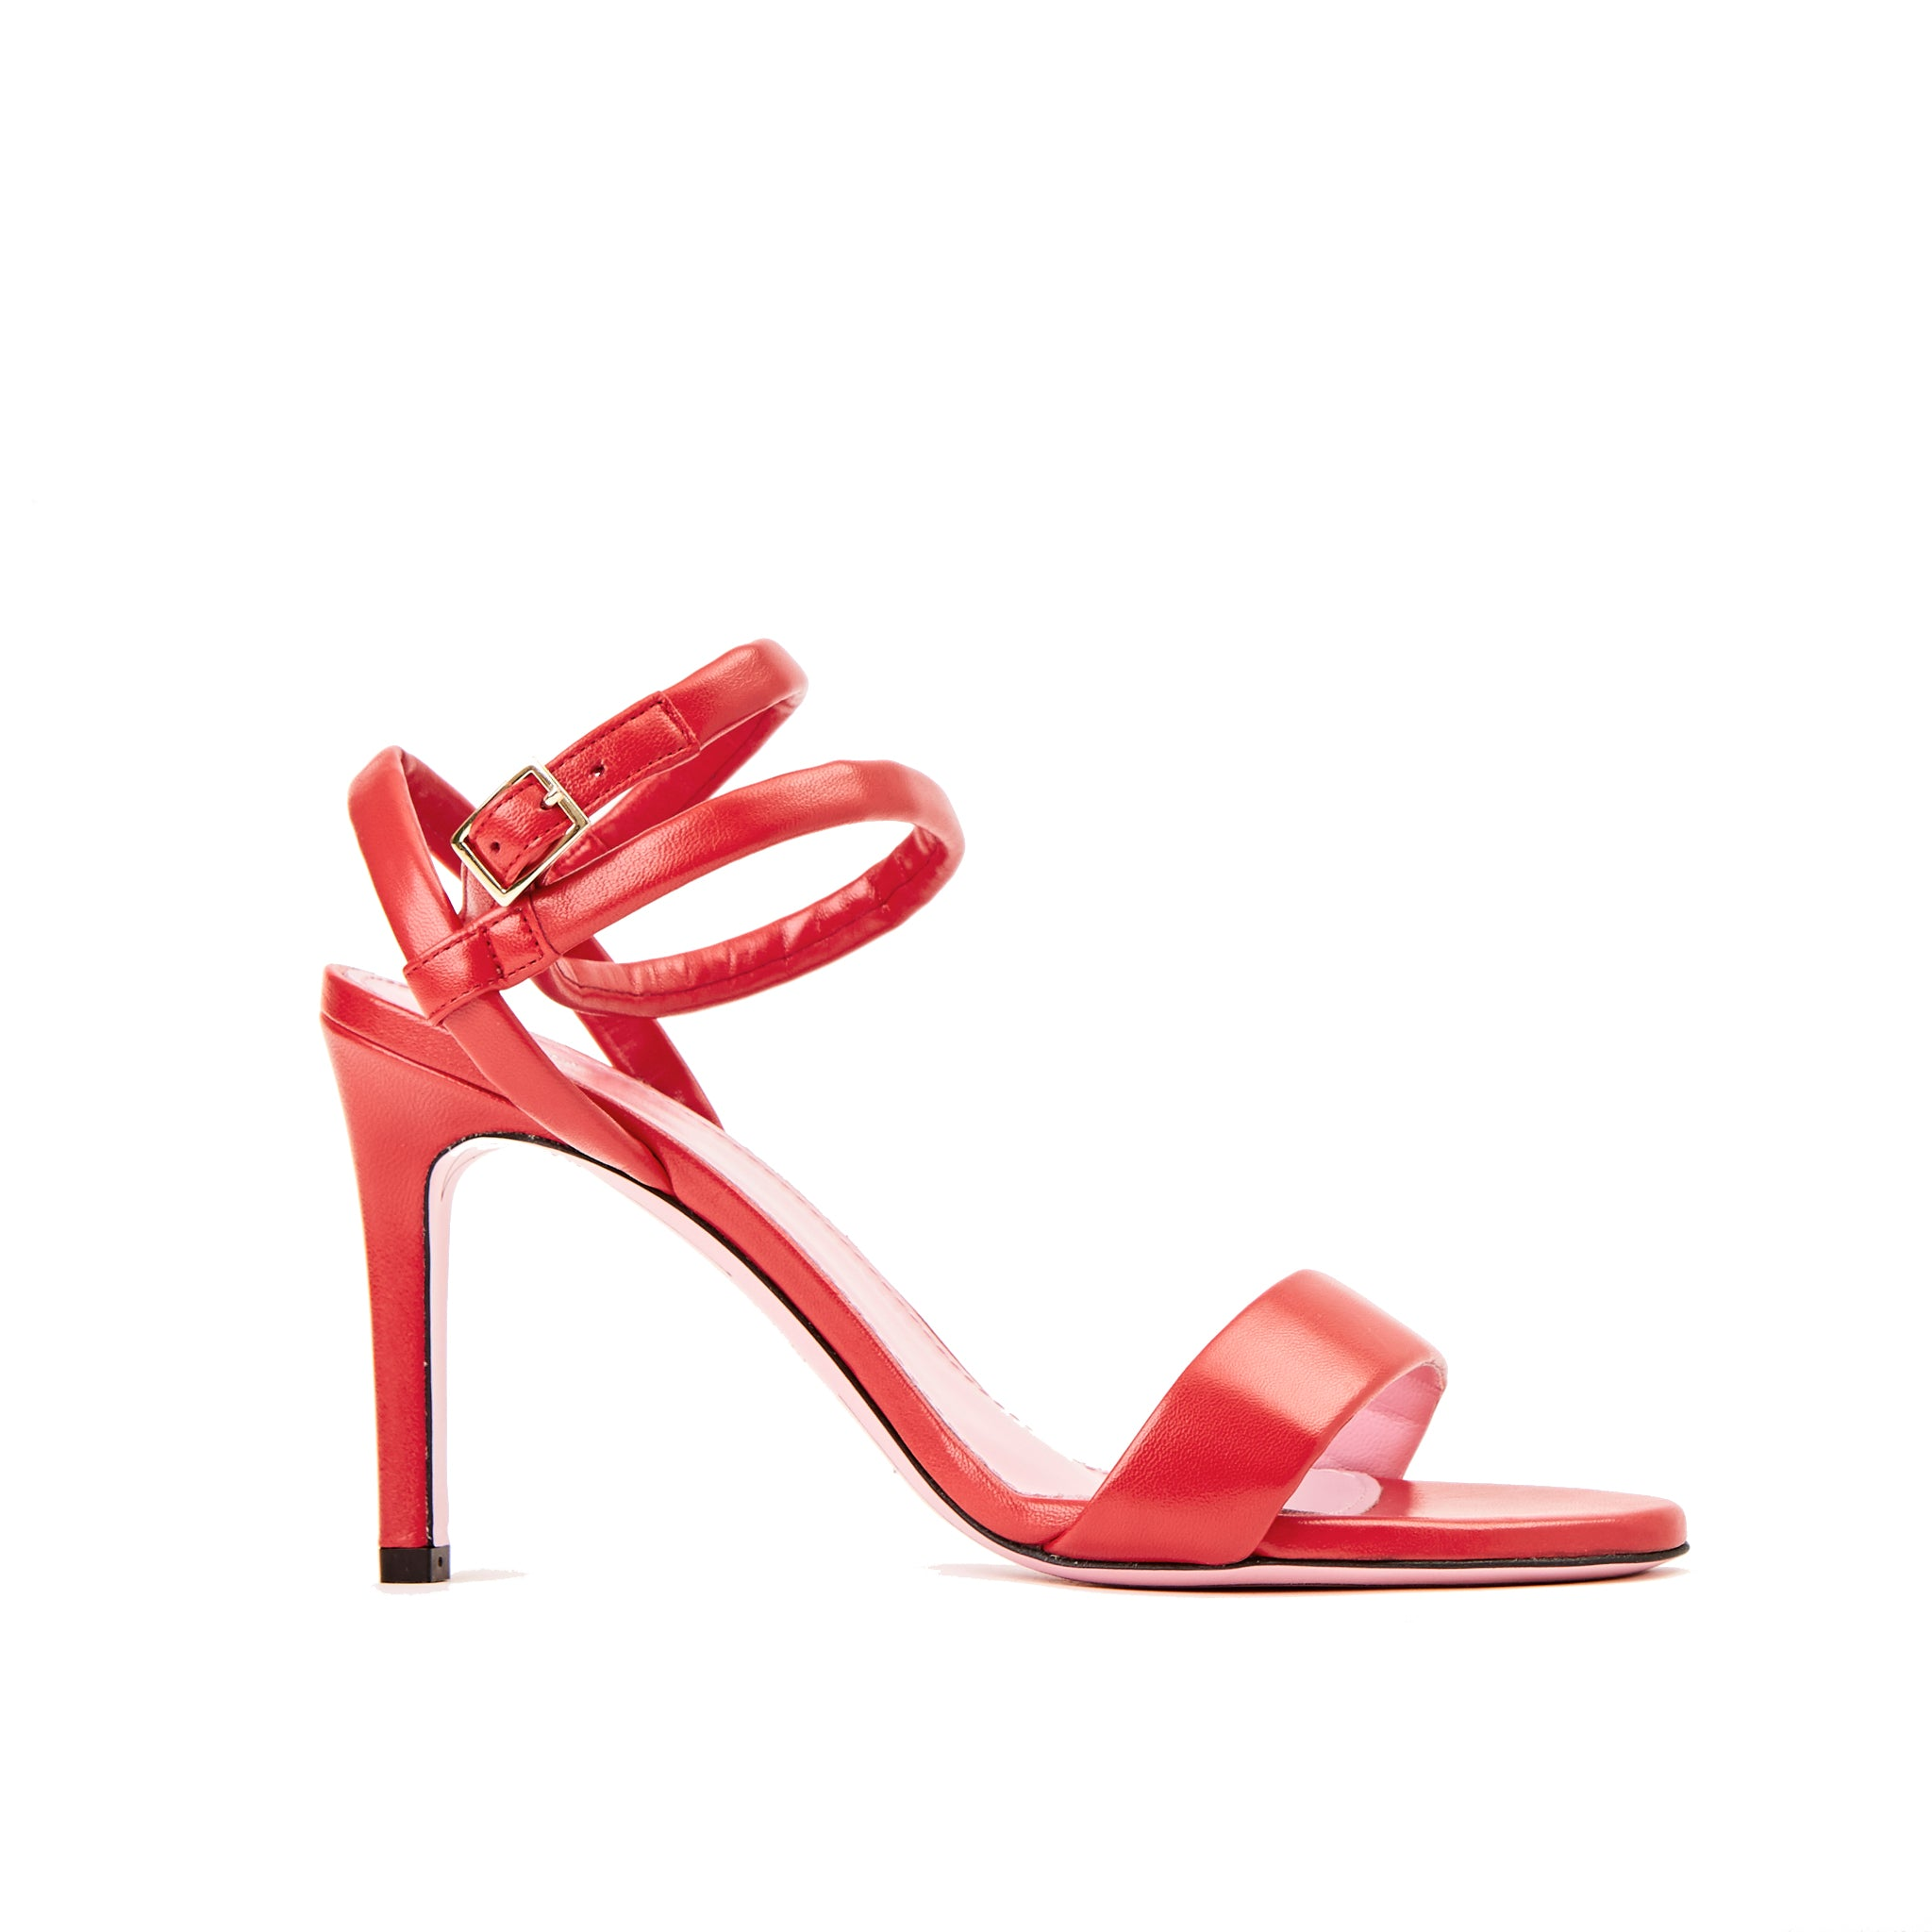 Phare Wrap ankle strap high heel sandal in red leather